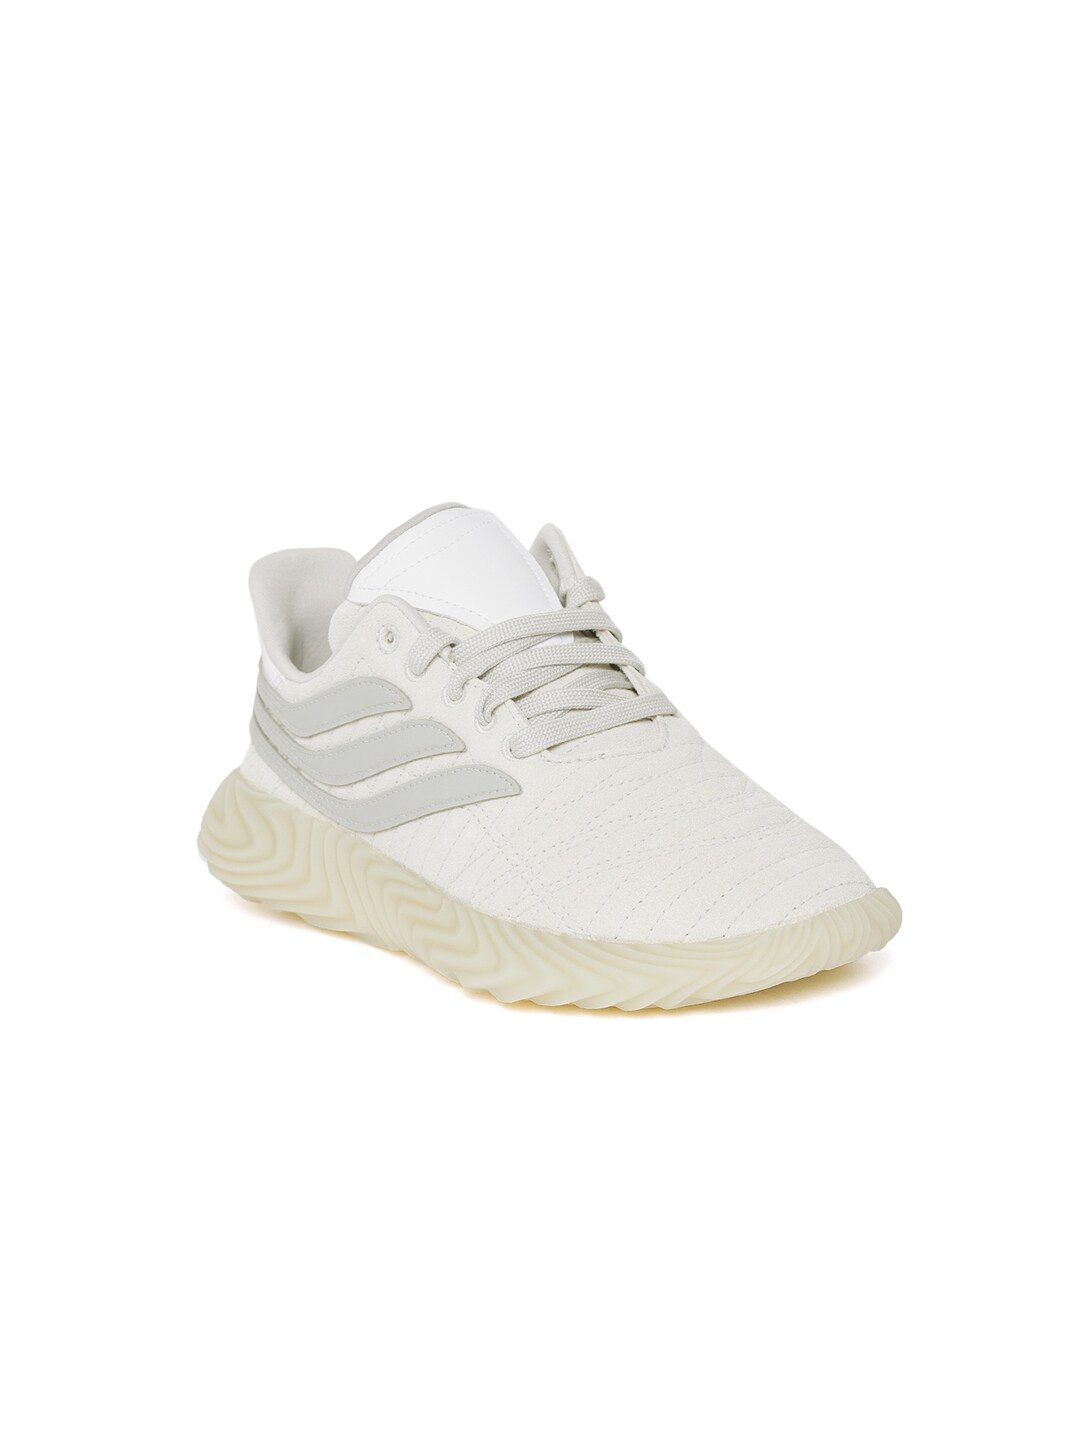 0a5f018eb3ae Adidas Shoes - Buy Adidas Shoes for Men   Women Online - Myntra